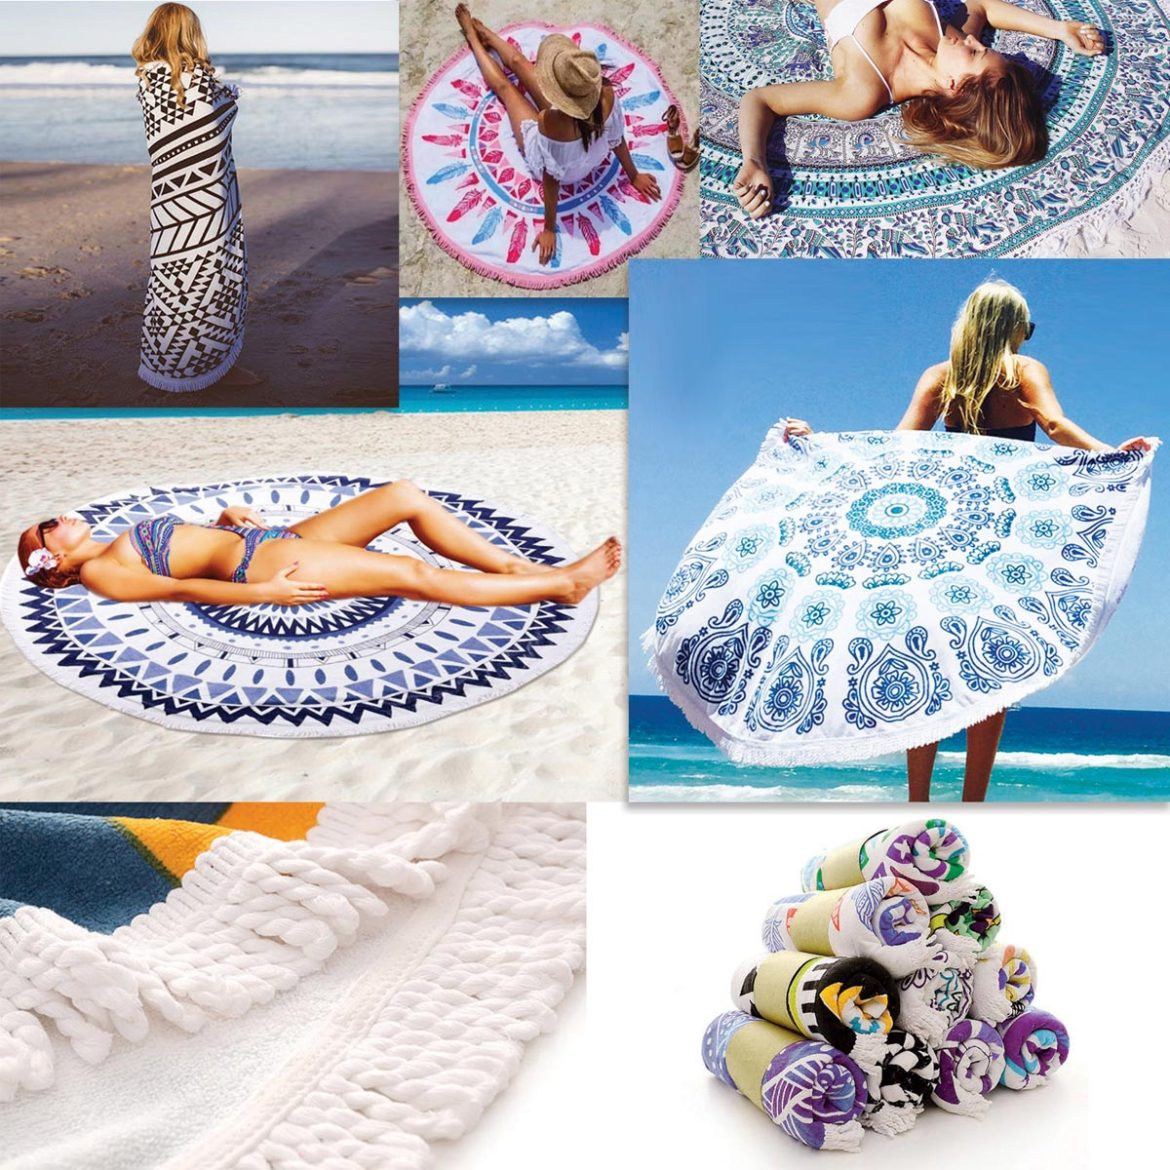 Check Out These Round Full Color Microfiber Beach Towels That Have Been Taking Social Media By Storm You Can Choose From Existing Patterns Or Add